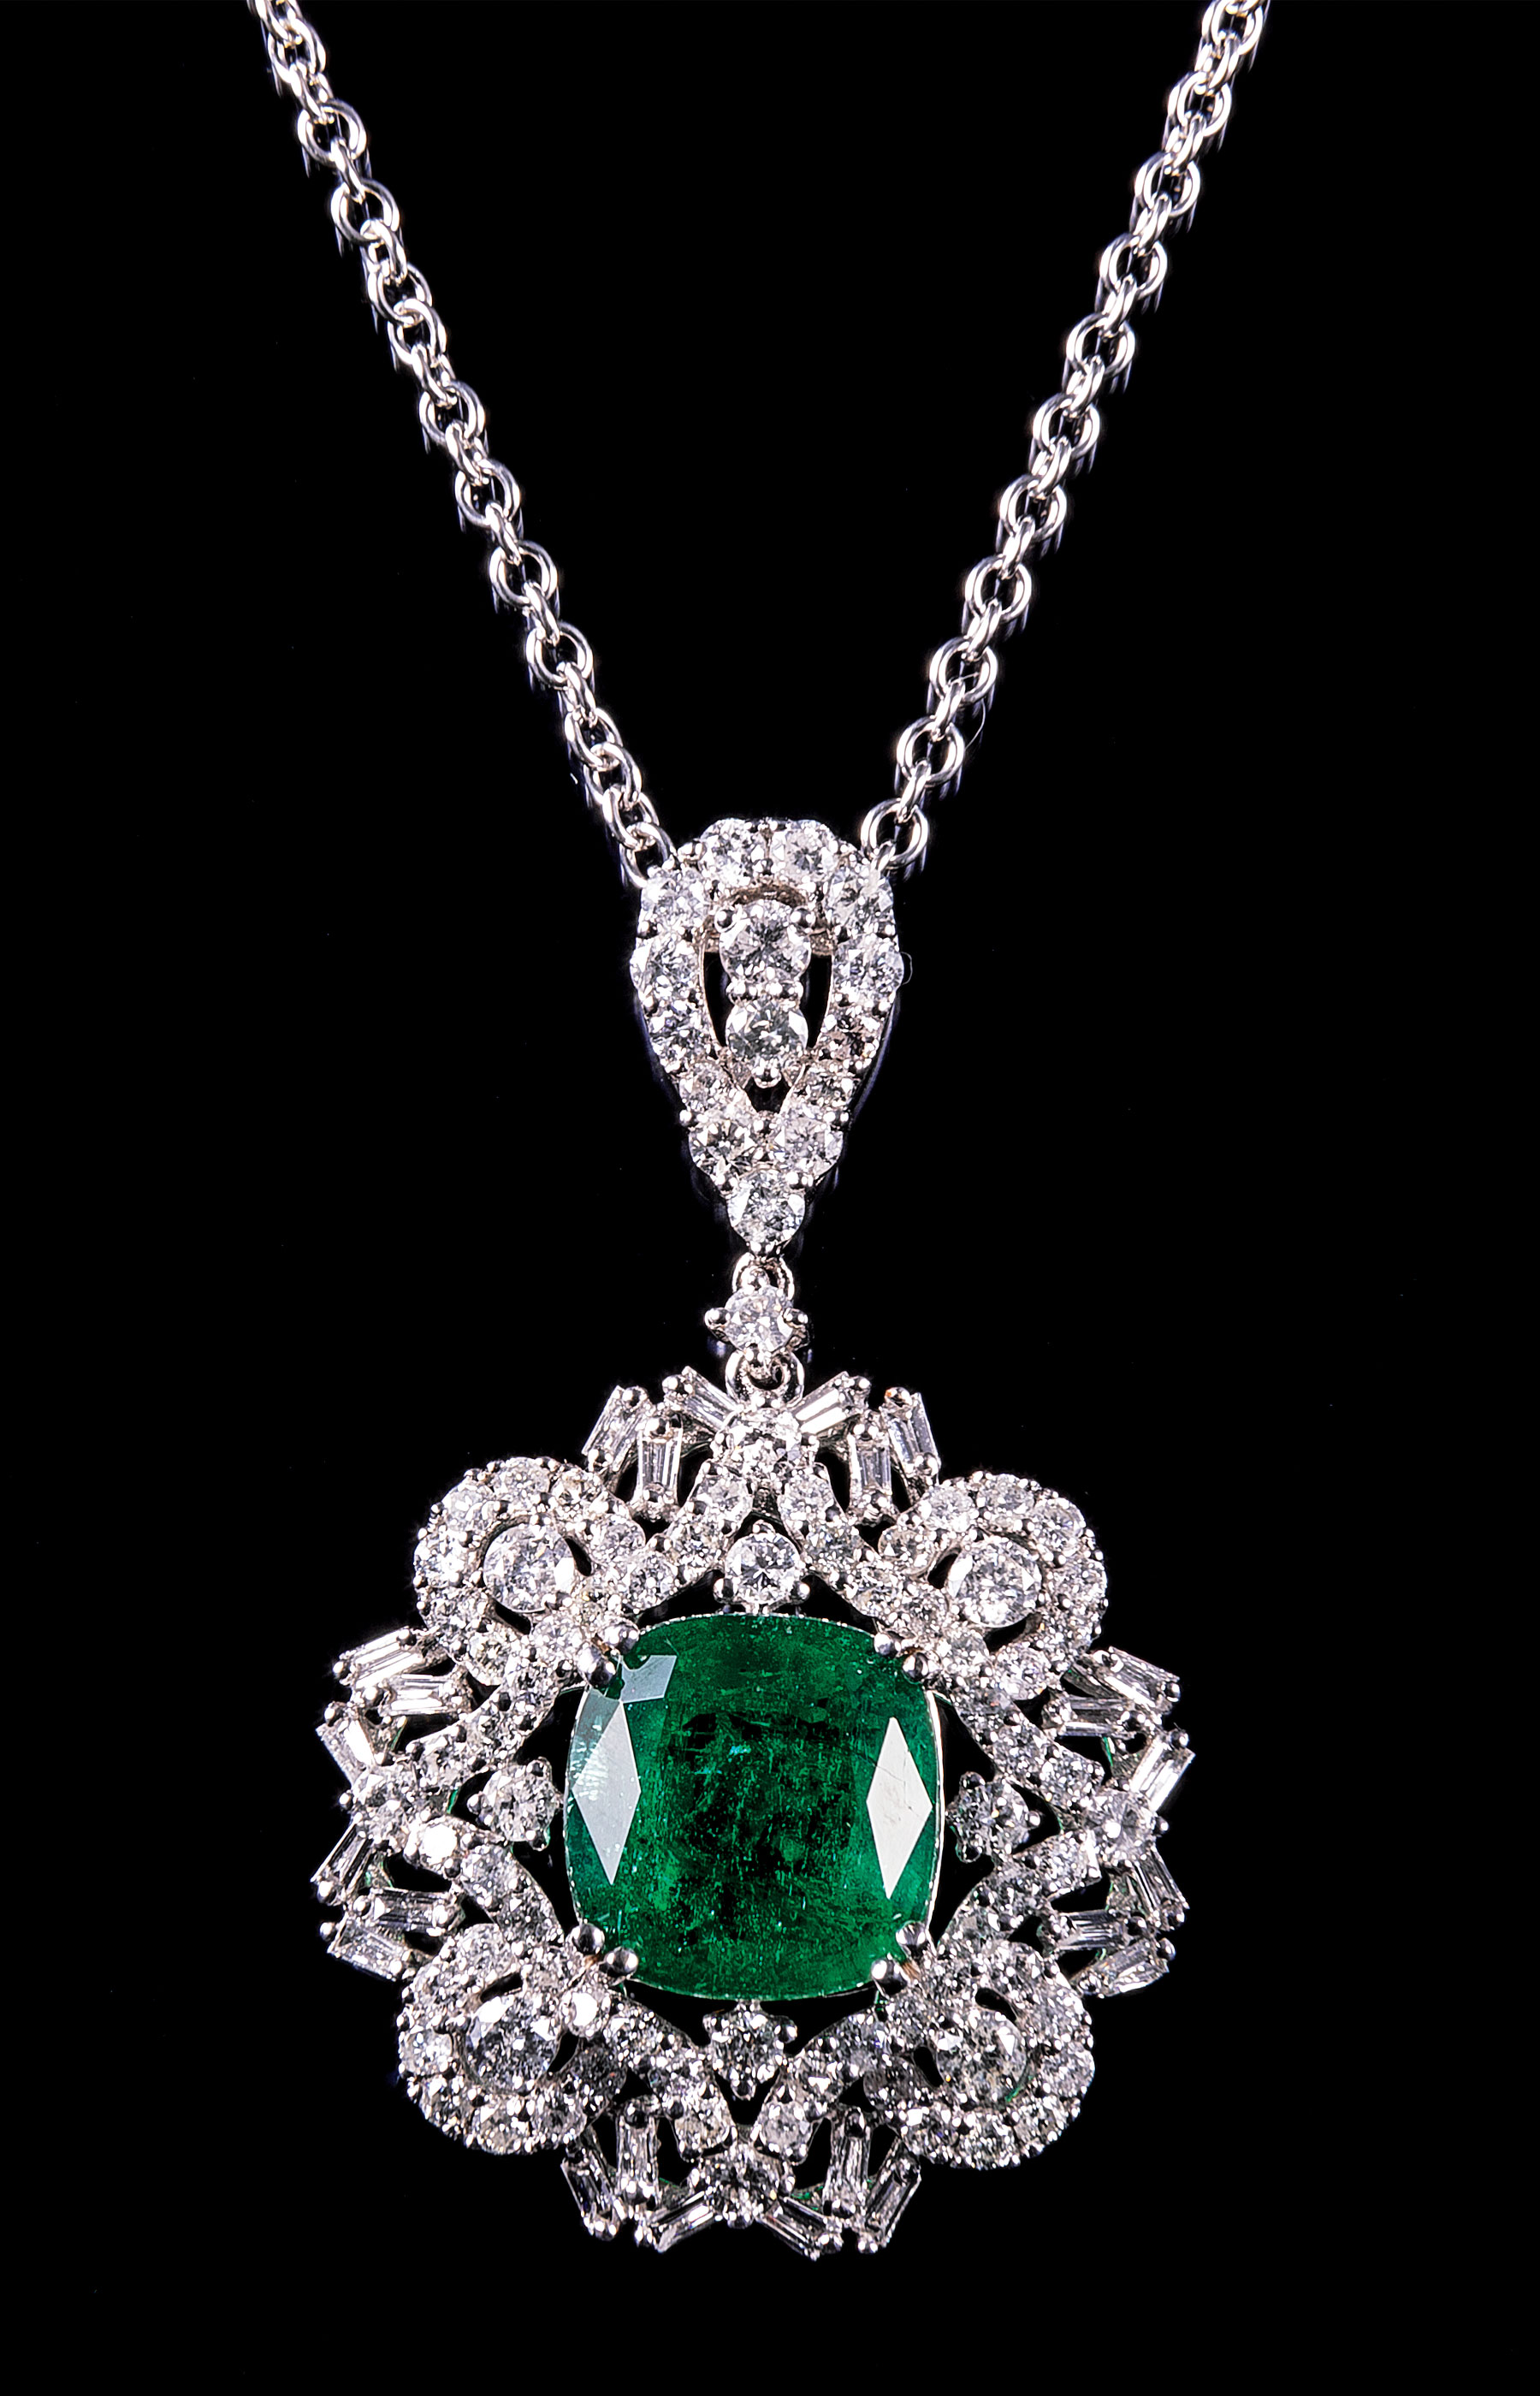 Lot 580 - 18 kt. White Gold, Emerald and Diamond Pendant with 14 kt. White Gold Chain , prong set square